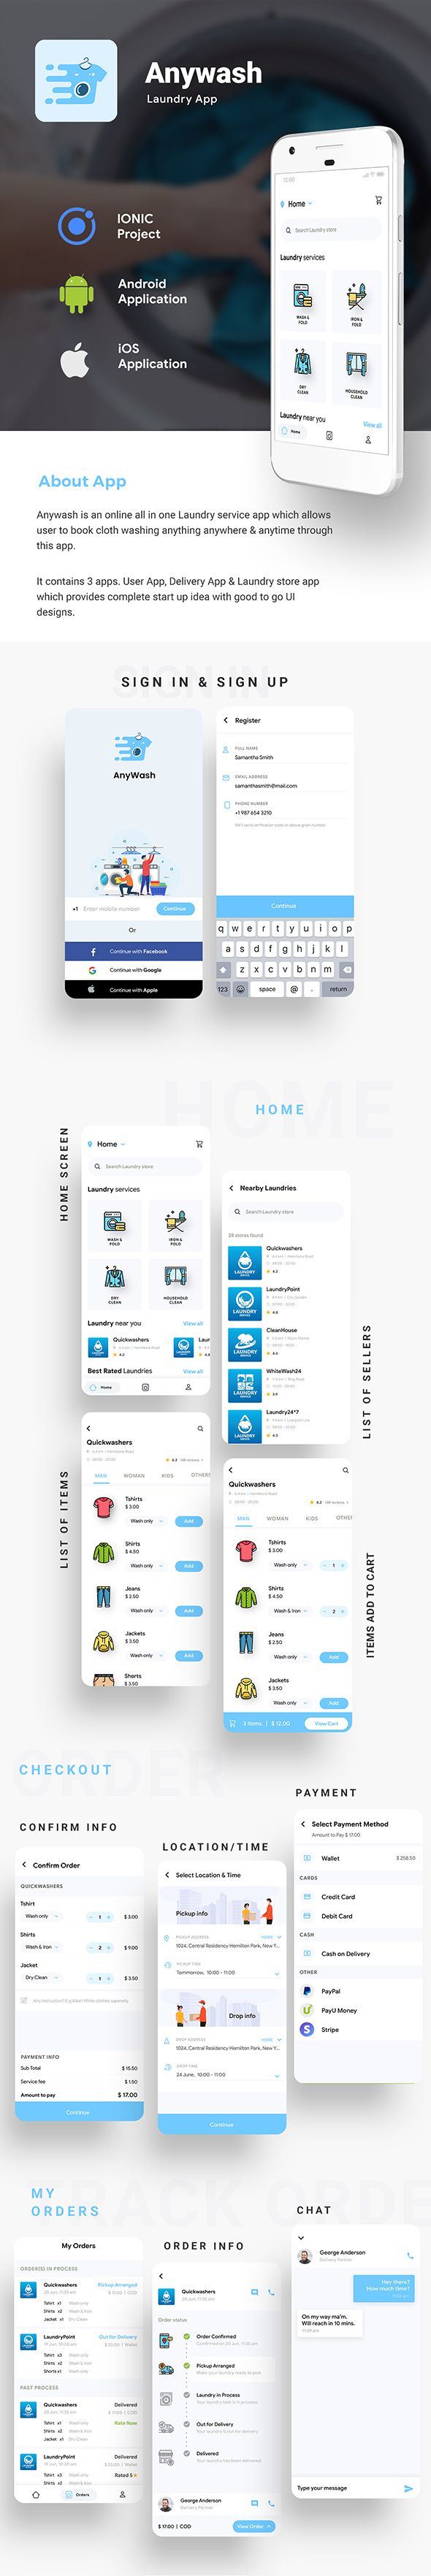 Multi Vendor Laundry Booking & Delivery App  Android + iOS App Template   3 Apps   IONIC 5   Anywash - 4